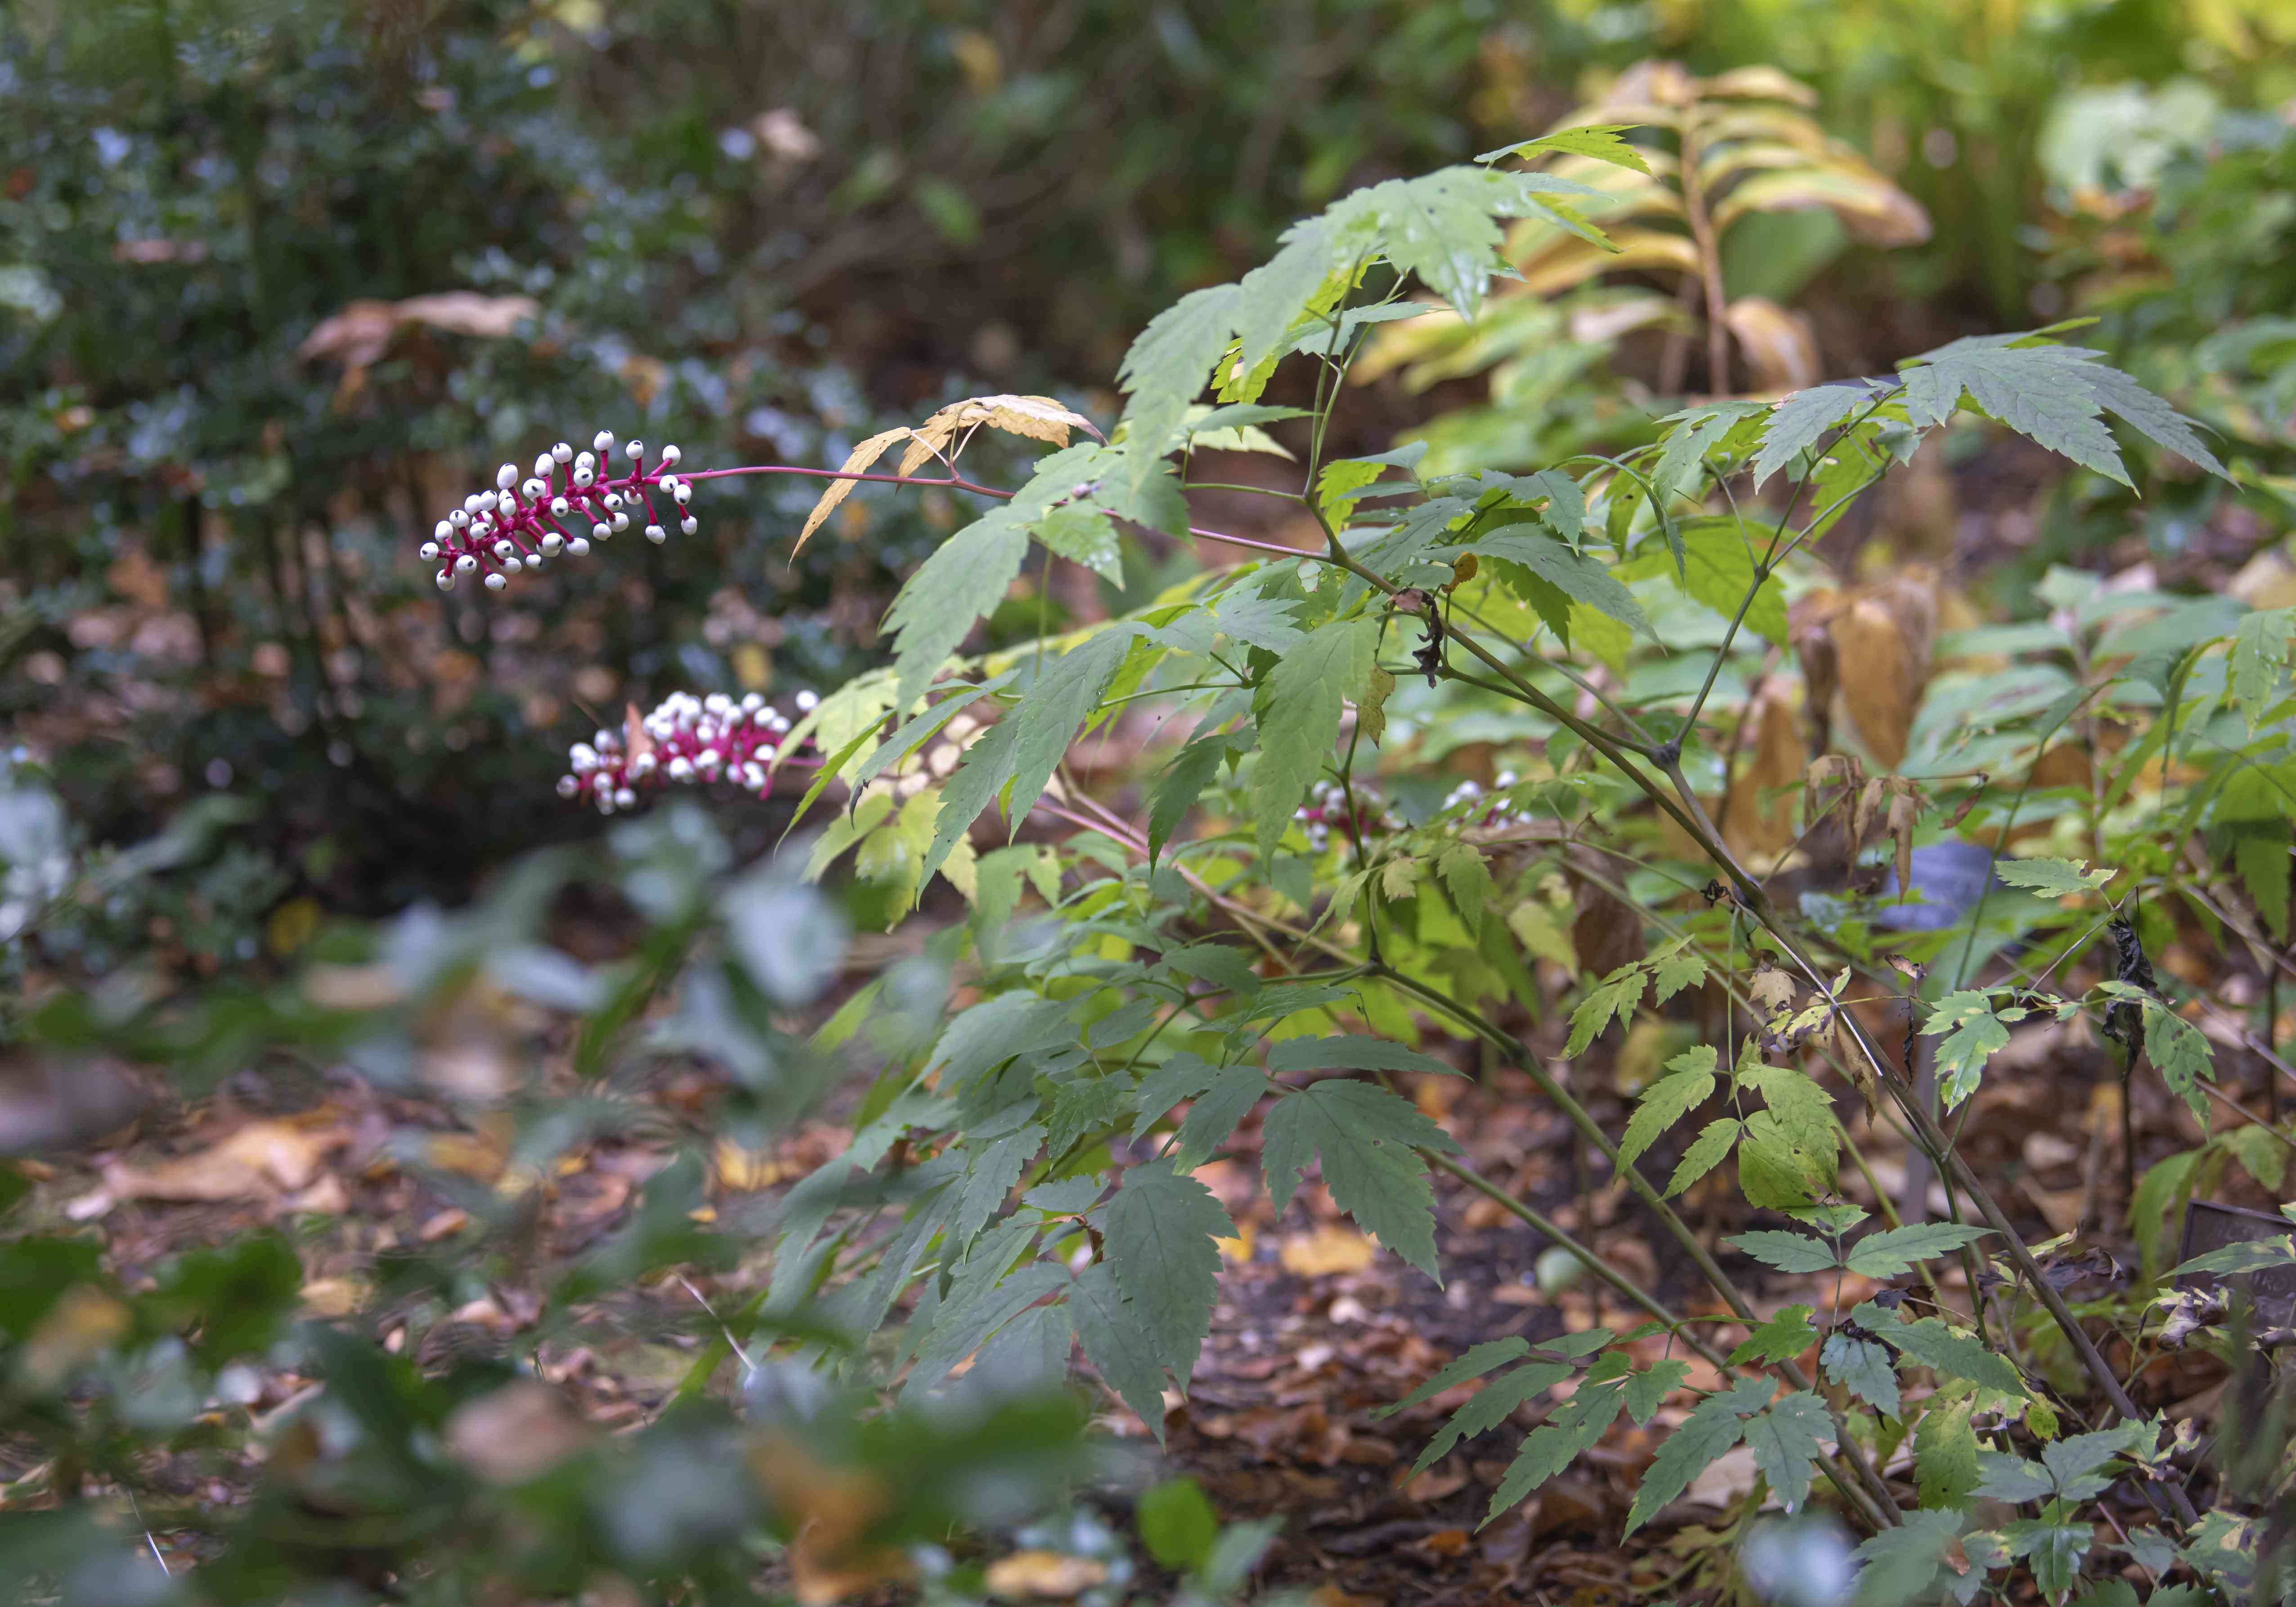 White baneberry plant with long pink stems extending from shrub with white berries